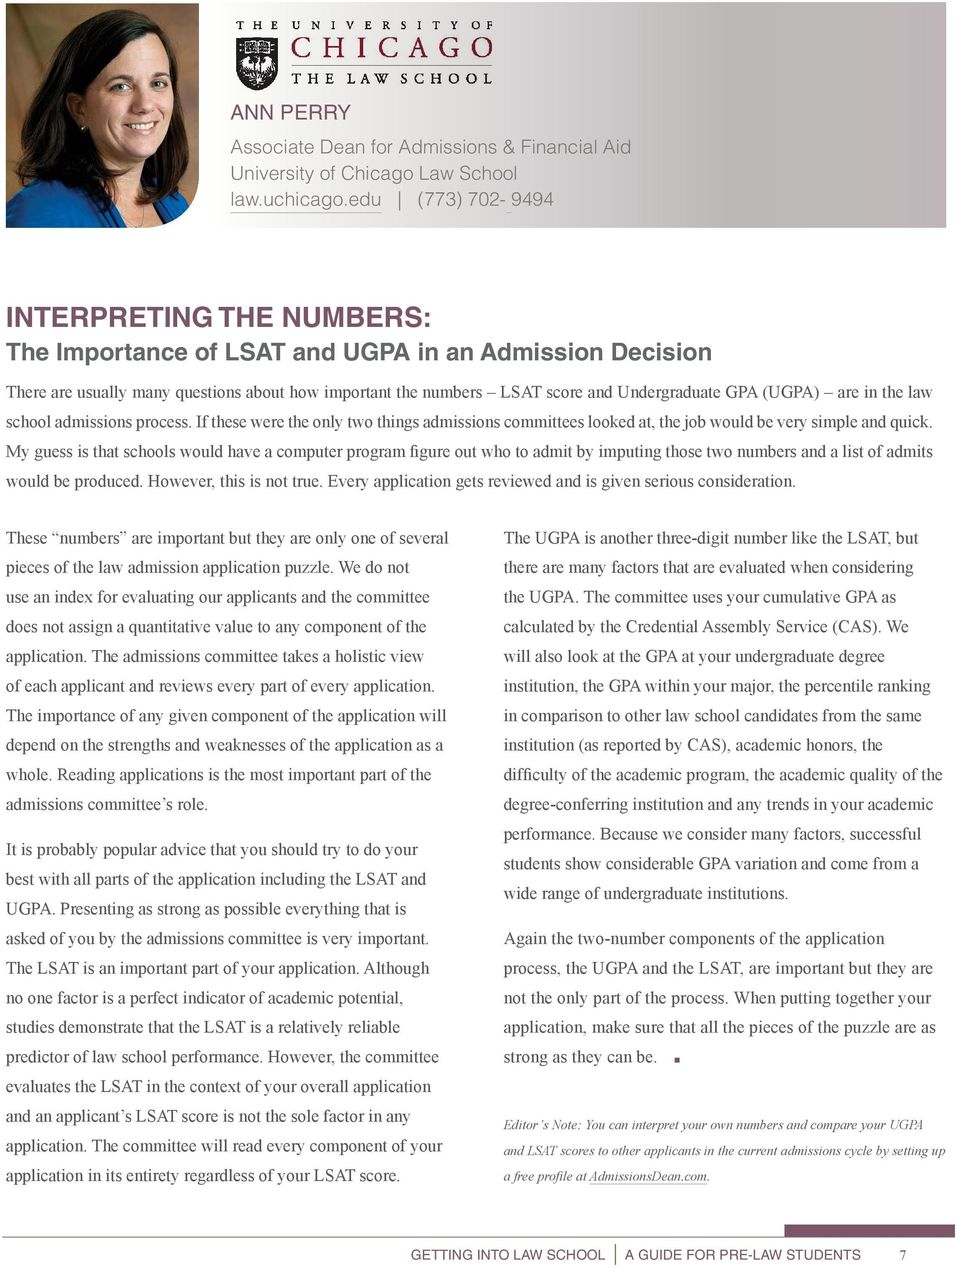 (UGPA) are in the law school admissions process. If these were the only two things admissions committees looked at, the job would be very simple and quick.